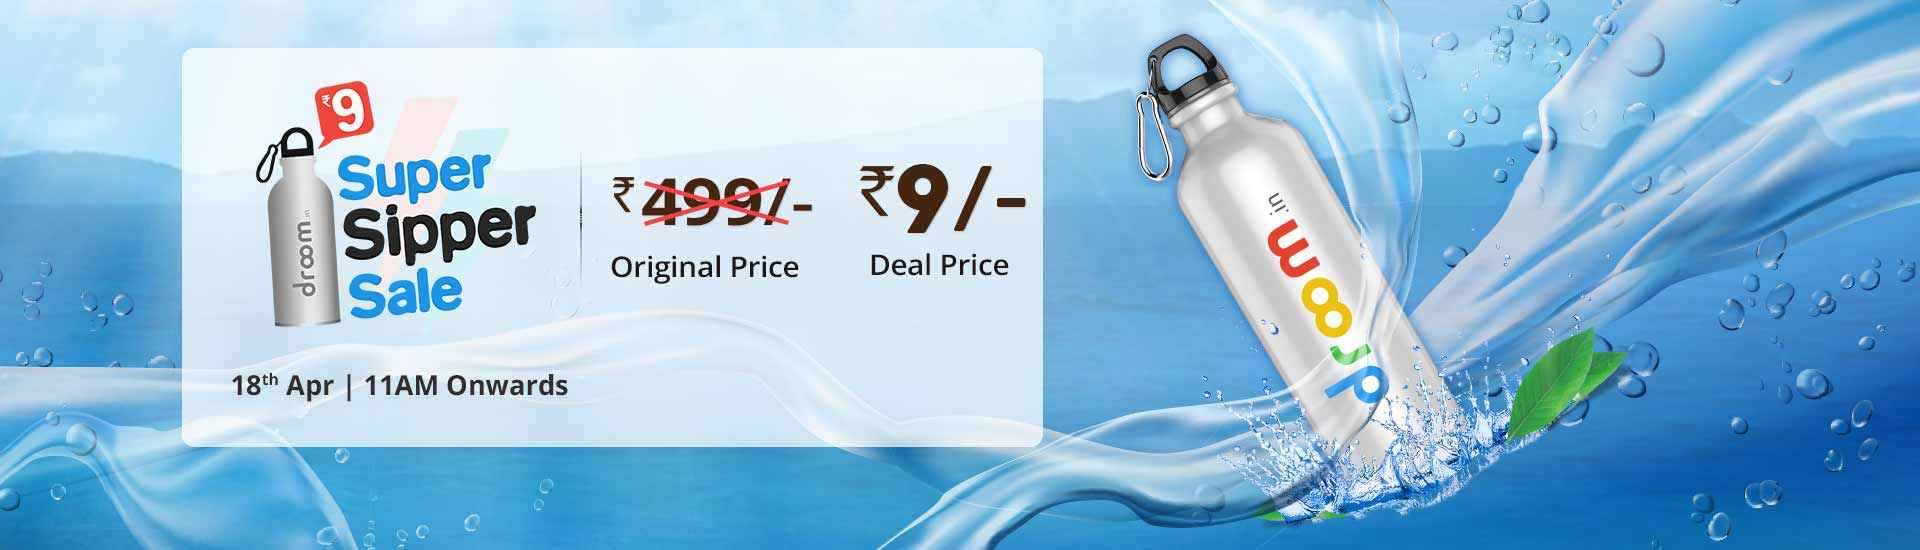 Droom - Steel Sipper Sale At Rs.9 Only Worth Rs.499